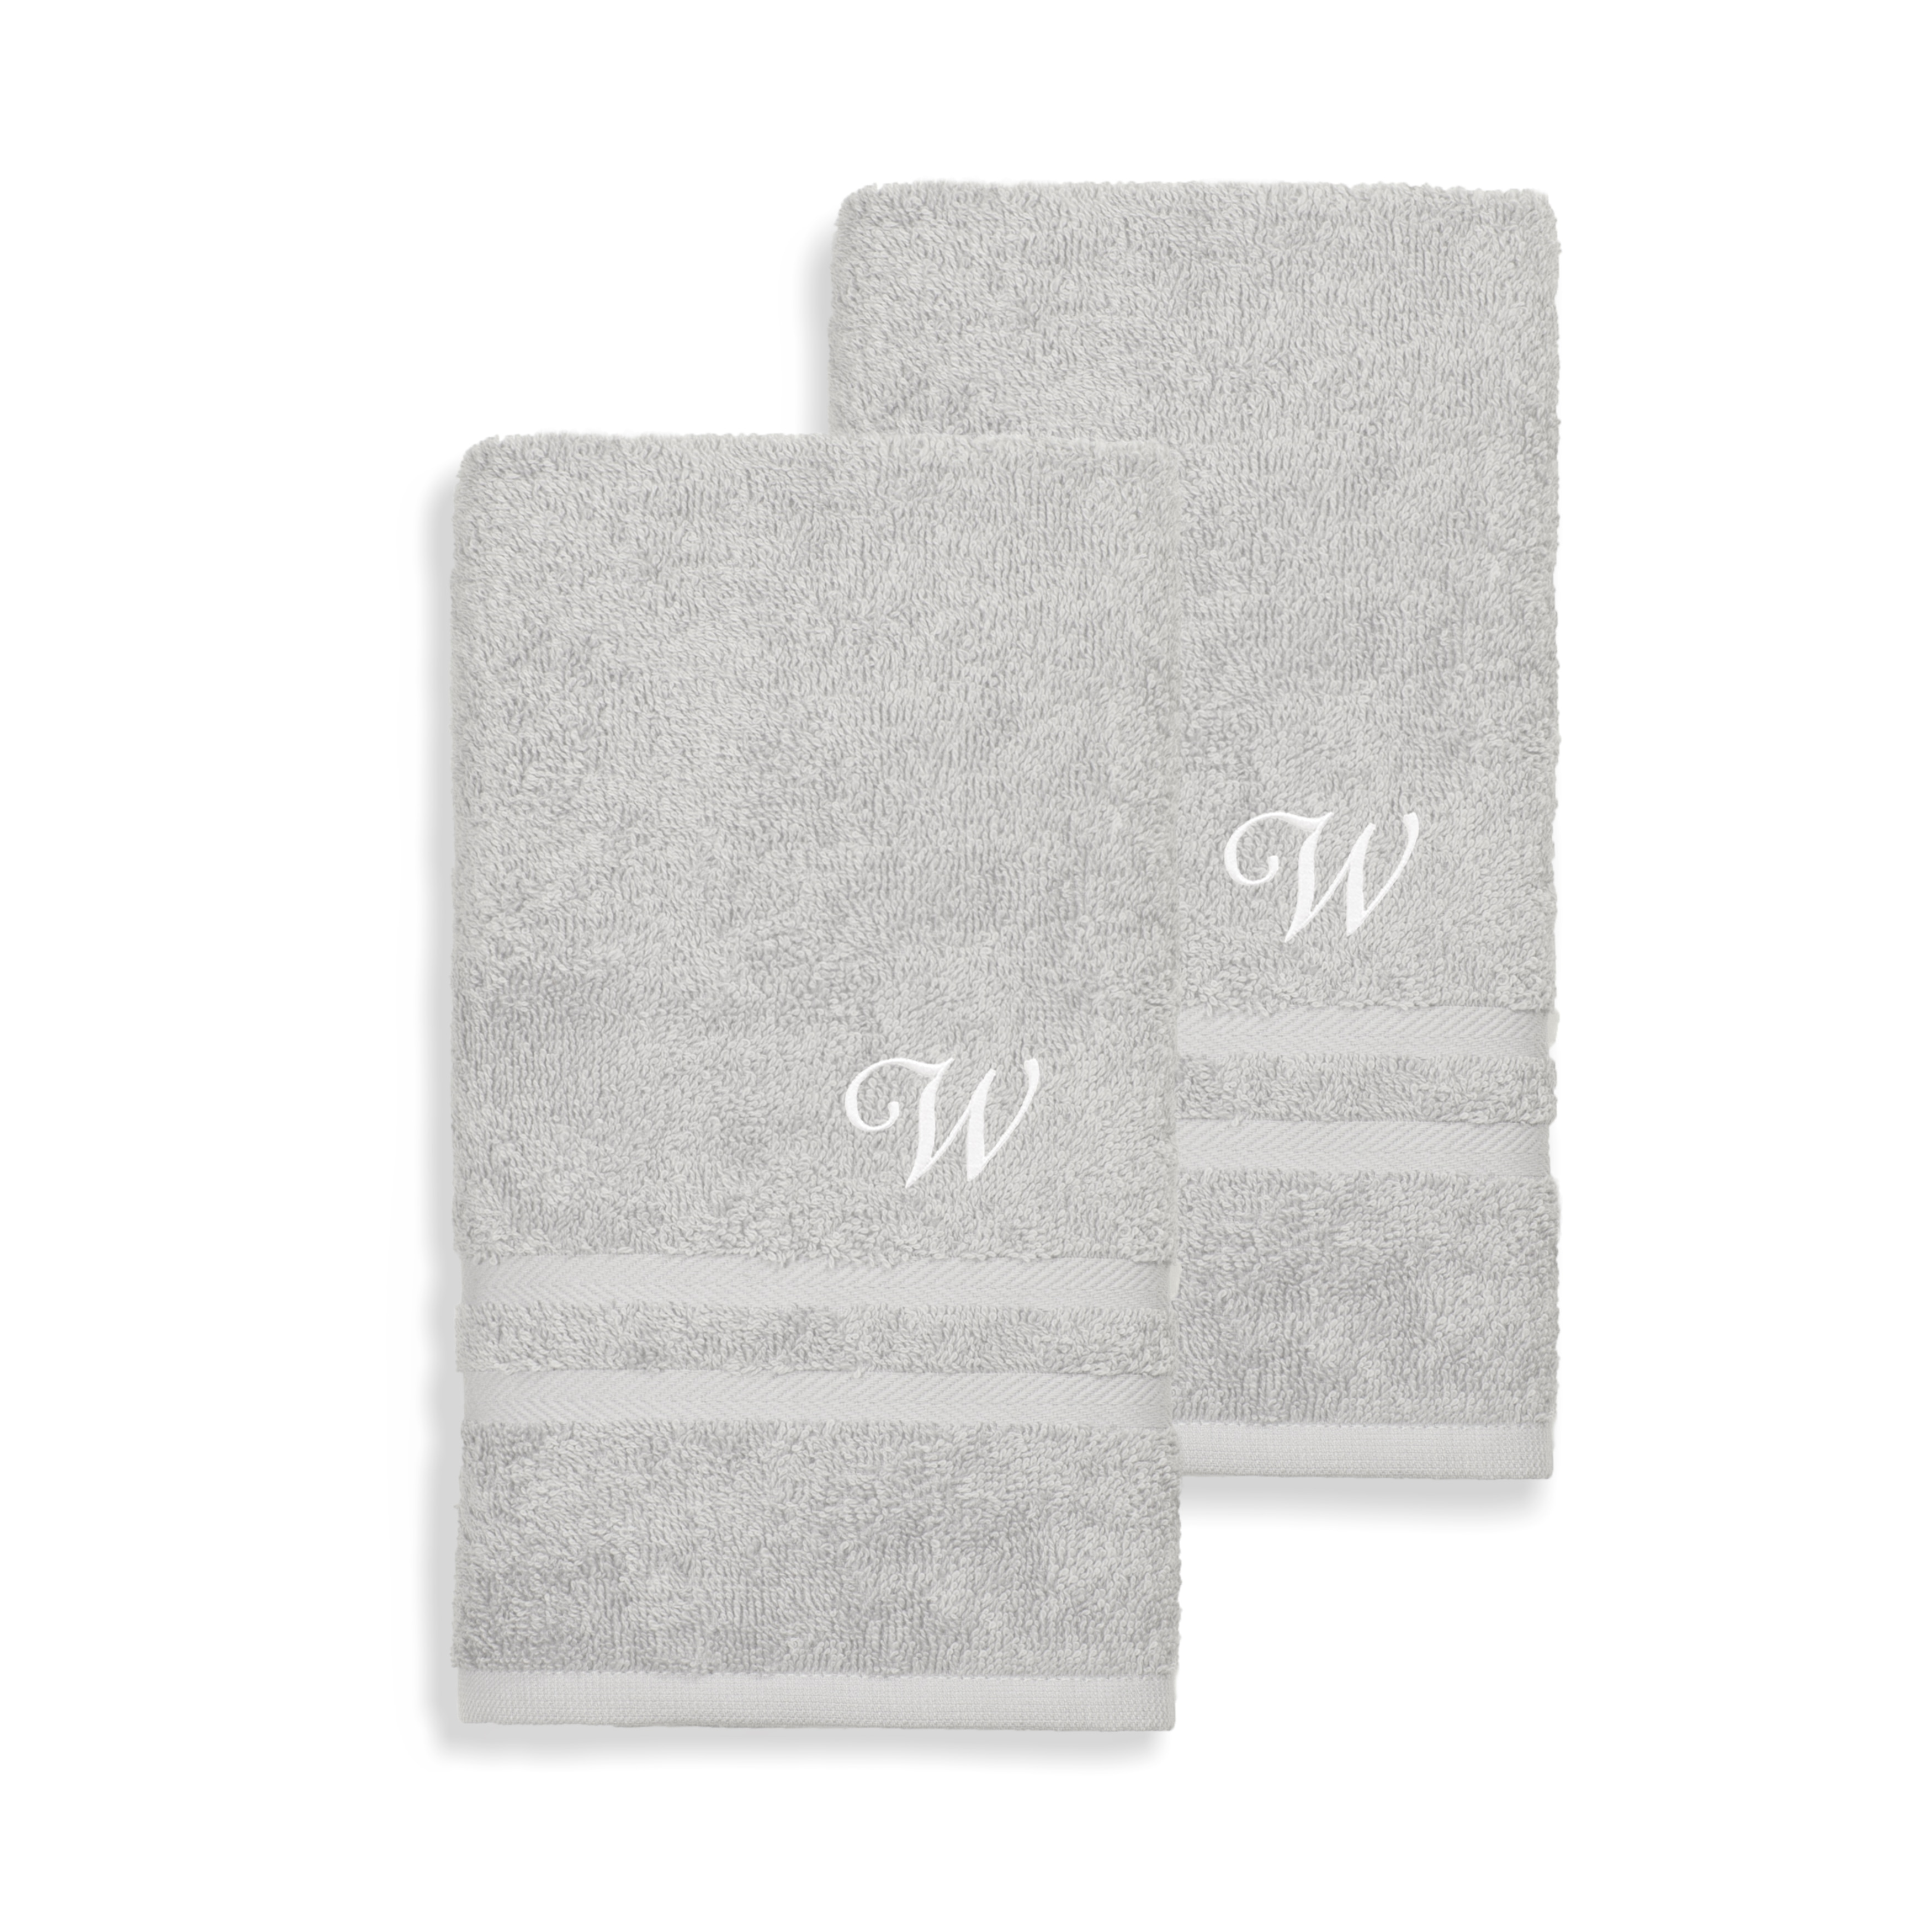 Gracewood Hollow John Turkish Cotton Set Of 2 Grey Hand Towels With White Script Monogr On Sale Overstock 21181247